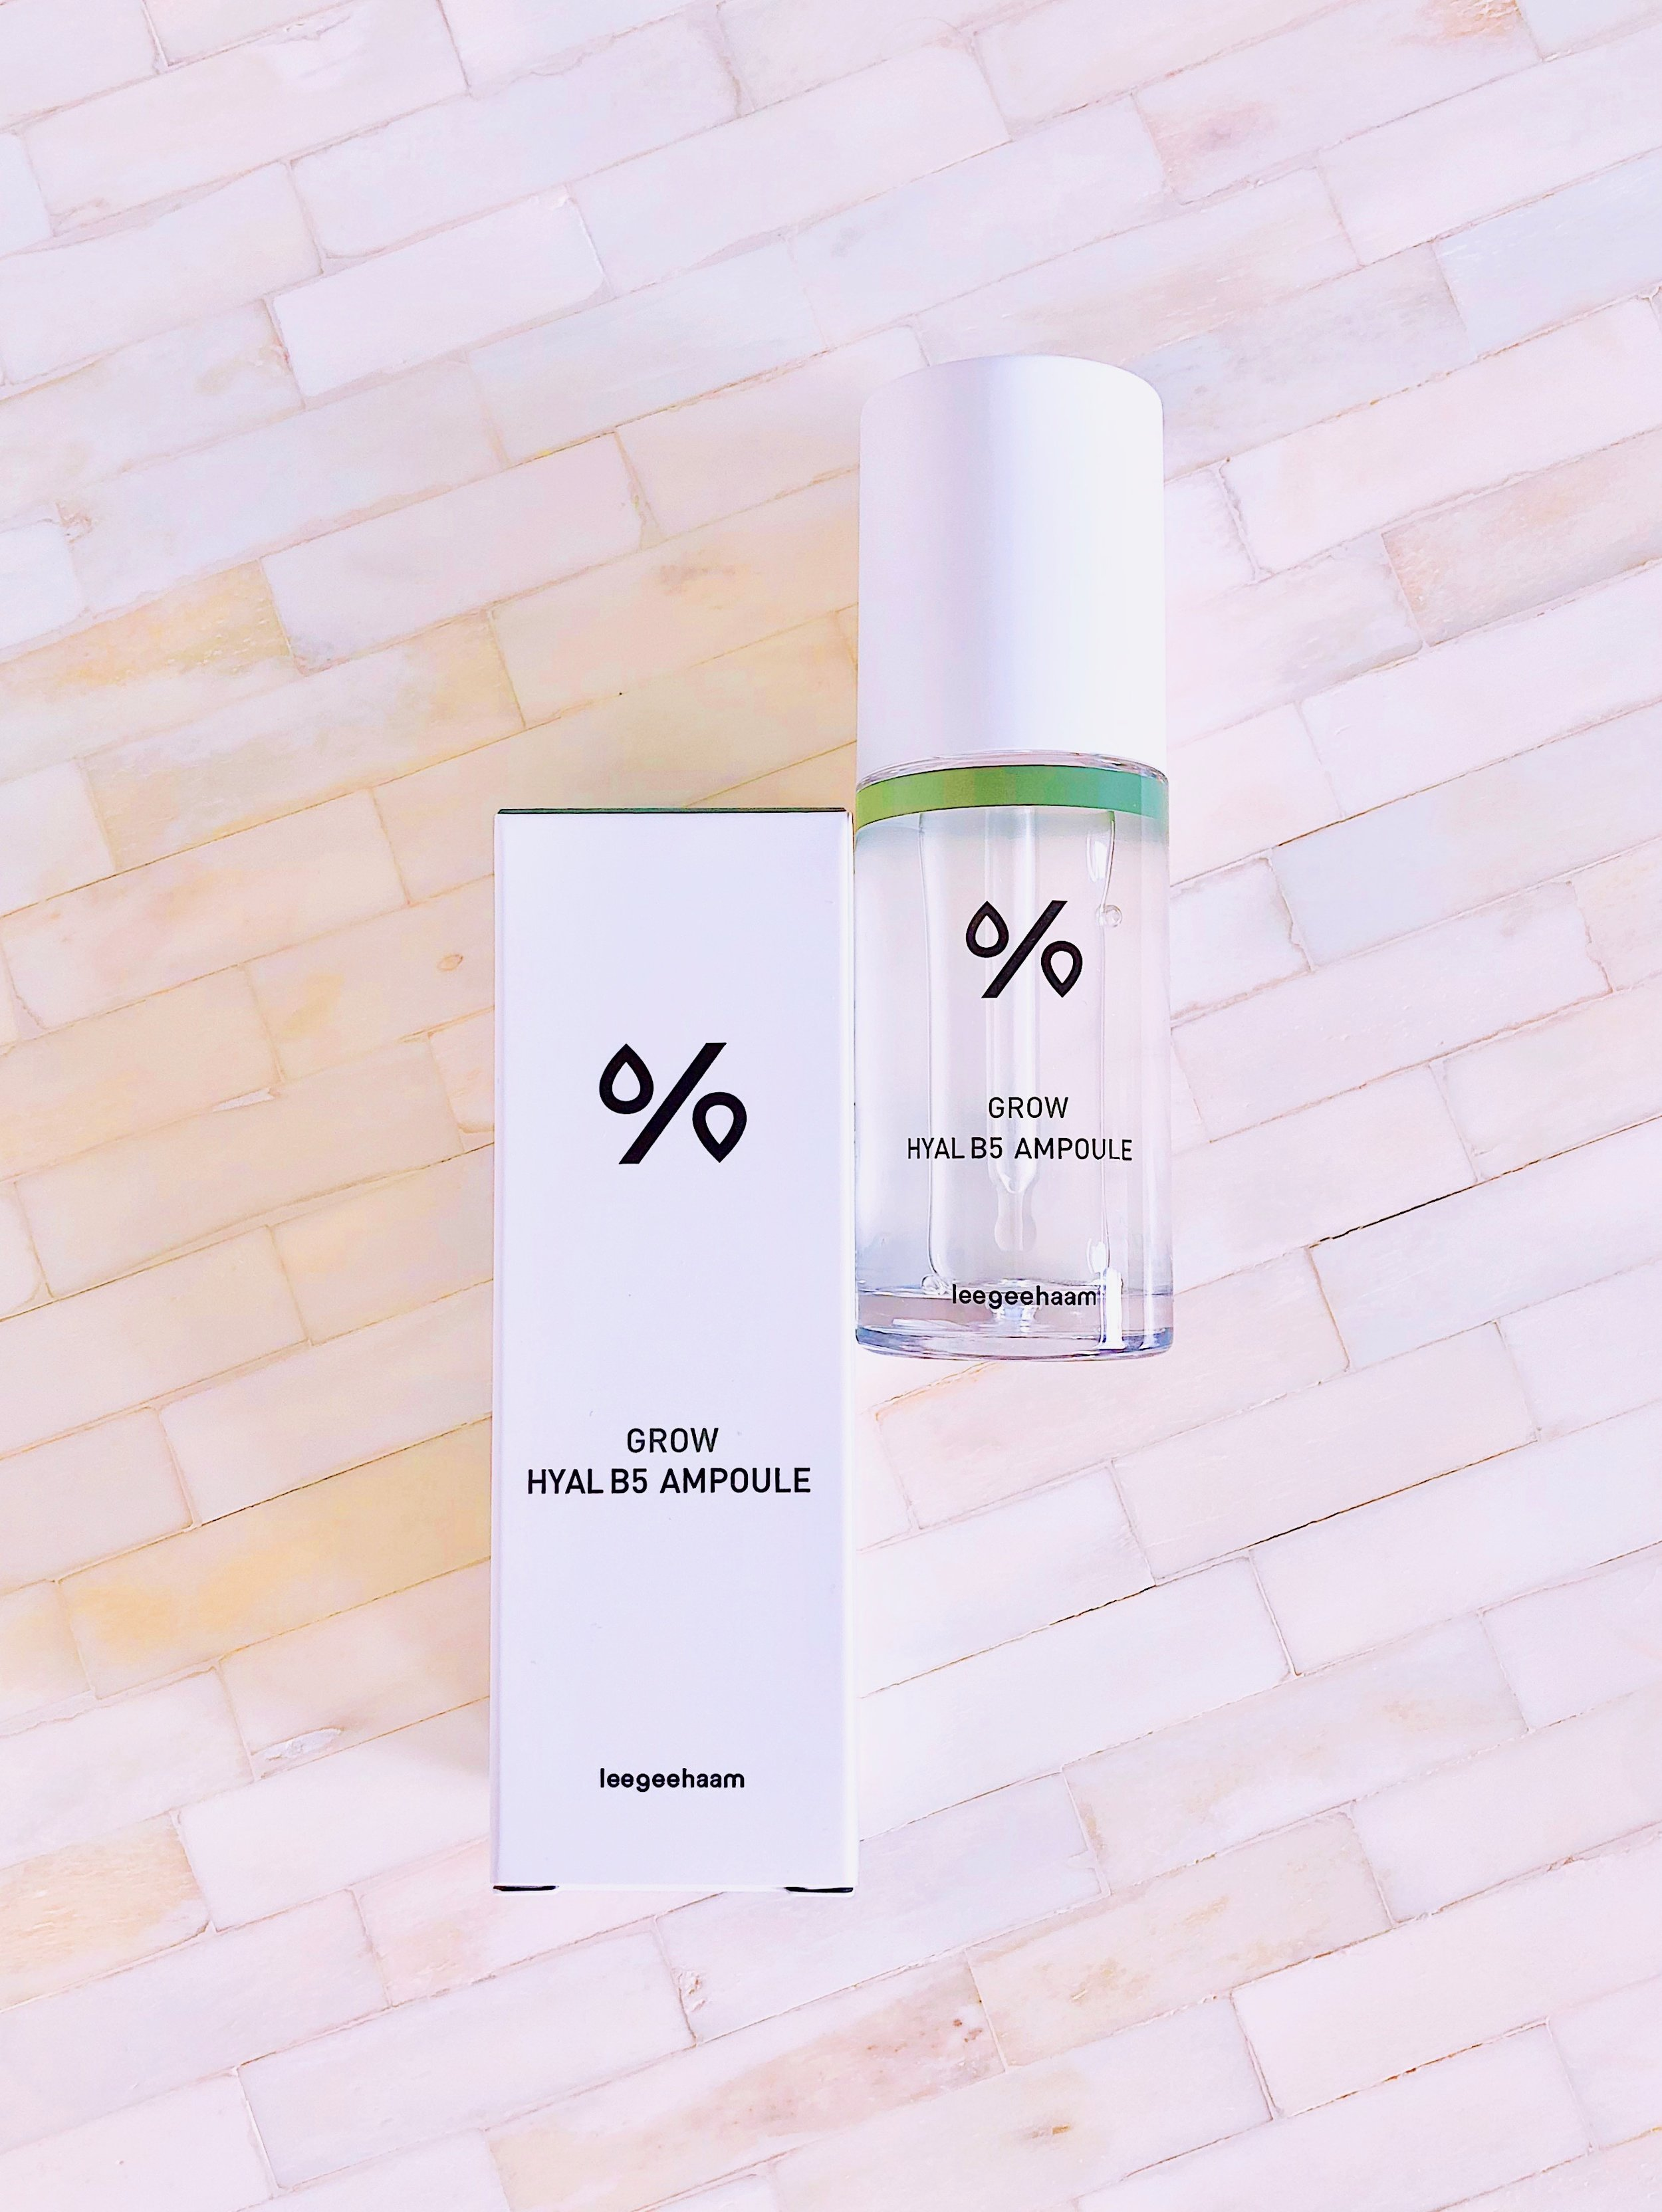 - Hydroxypropyltrimonium Hyaluronate, Hydrolyzed Hyaluronic Acid, Sodium Acetylated Hyaluronate, Sodium Hyaluronate & Ascorbyl Propyl Hyaluronate|Humectants that help to attract and retain moisture within the skinVitamins B5 (panthenol) & B3 (niacinamide) | Form a moisture barrier and regulate sebum productionCentella Asiatica (madecassic acid) | Corrects red and sensitised skin and suppresses inflammation by inhibiting the release of pro-inflammatory cytokinesFull ingredients:Water, Glycerin, Methylpropanediol, 1,2-hexanediol, Niacinamide, Dioscorea japonica root extract, Sodium hyaluronate, Panthenol, Saccharomyces ferment filtrate, Octyldodeceth-16, Peg-40 hydrogenated castor oil, Polyquaternium-51, Hydrolyzed hyaluronic acid, Piper methysticum leaf/root/stem extract, Centella asiatica extract, Panax ginseng berry extract, Vanilla planifolia fruit extract, Hydrogenated lecithin, Glycosyl trehalose, Glyceryl glucoside, Ethylhexylglycerin, Hydrogenated starch hydrolysate, Adenosine, Biosaccharide gum-1, Raffinose, Disodium edta, Olea europaea (olive) fruit oil, Lecithin, Carbomer, Tromethamine, Beta-glucan, Michelia alba leaf oil, Myristica fragrans (nutmeg) kernel oil, Daucus carota sativa (carrot) seed oil, Elettaria cardamomum seed oil,Michelia alba flower oil, Butylene glycol, Tagetes minuta flower oil, Hydroxypropyltrimonium hyaluronate, Ascorbyl propyl hyaluronate, Sodium acetylated hyaluronate